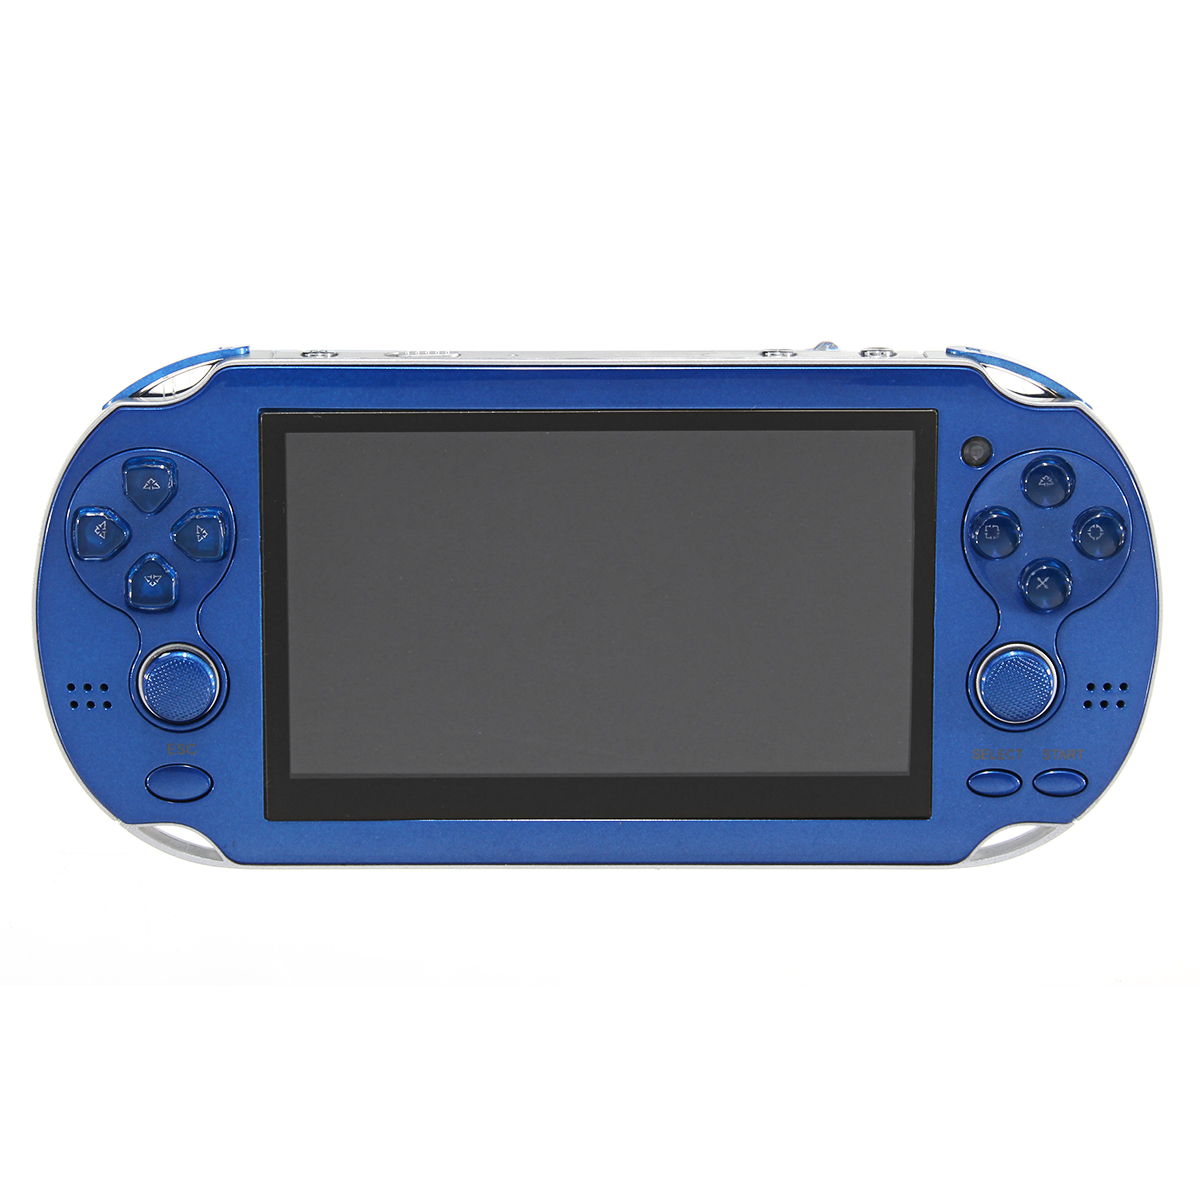 4.3 Inch Portable Handheld Game Console Player 300 Game Built in Video Camera